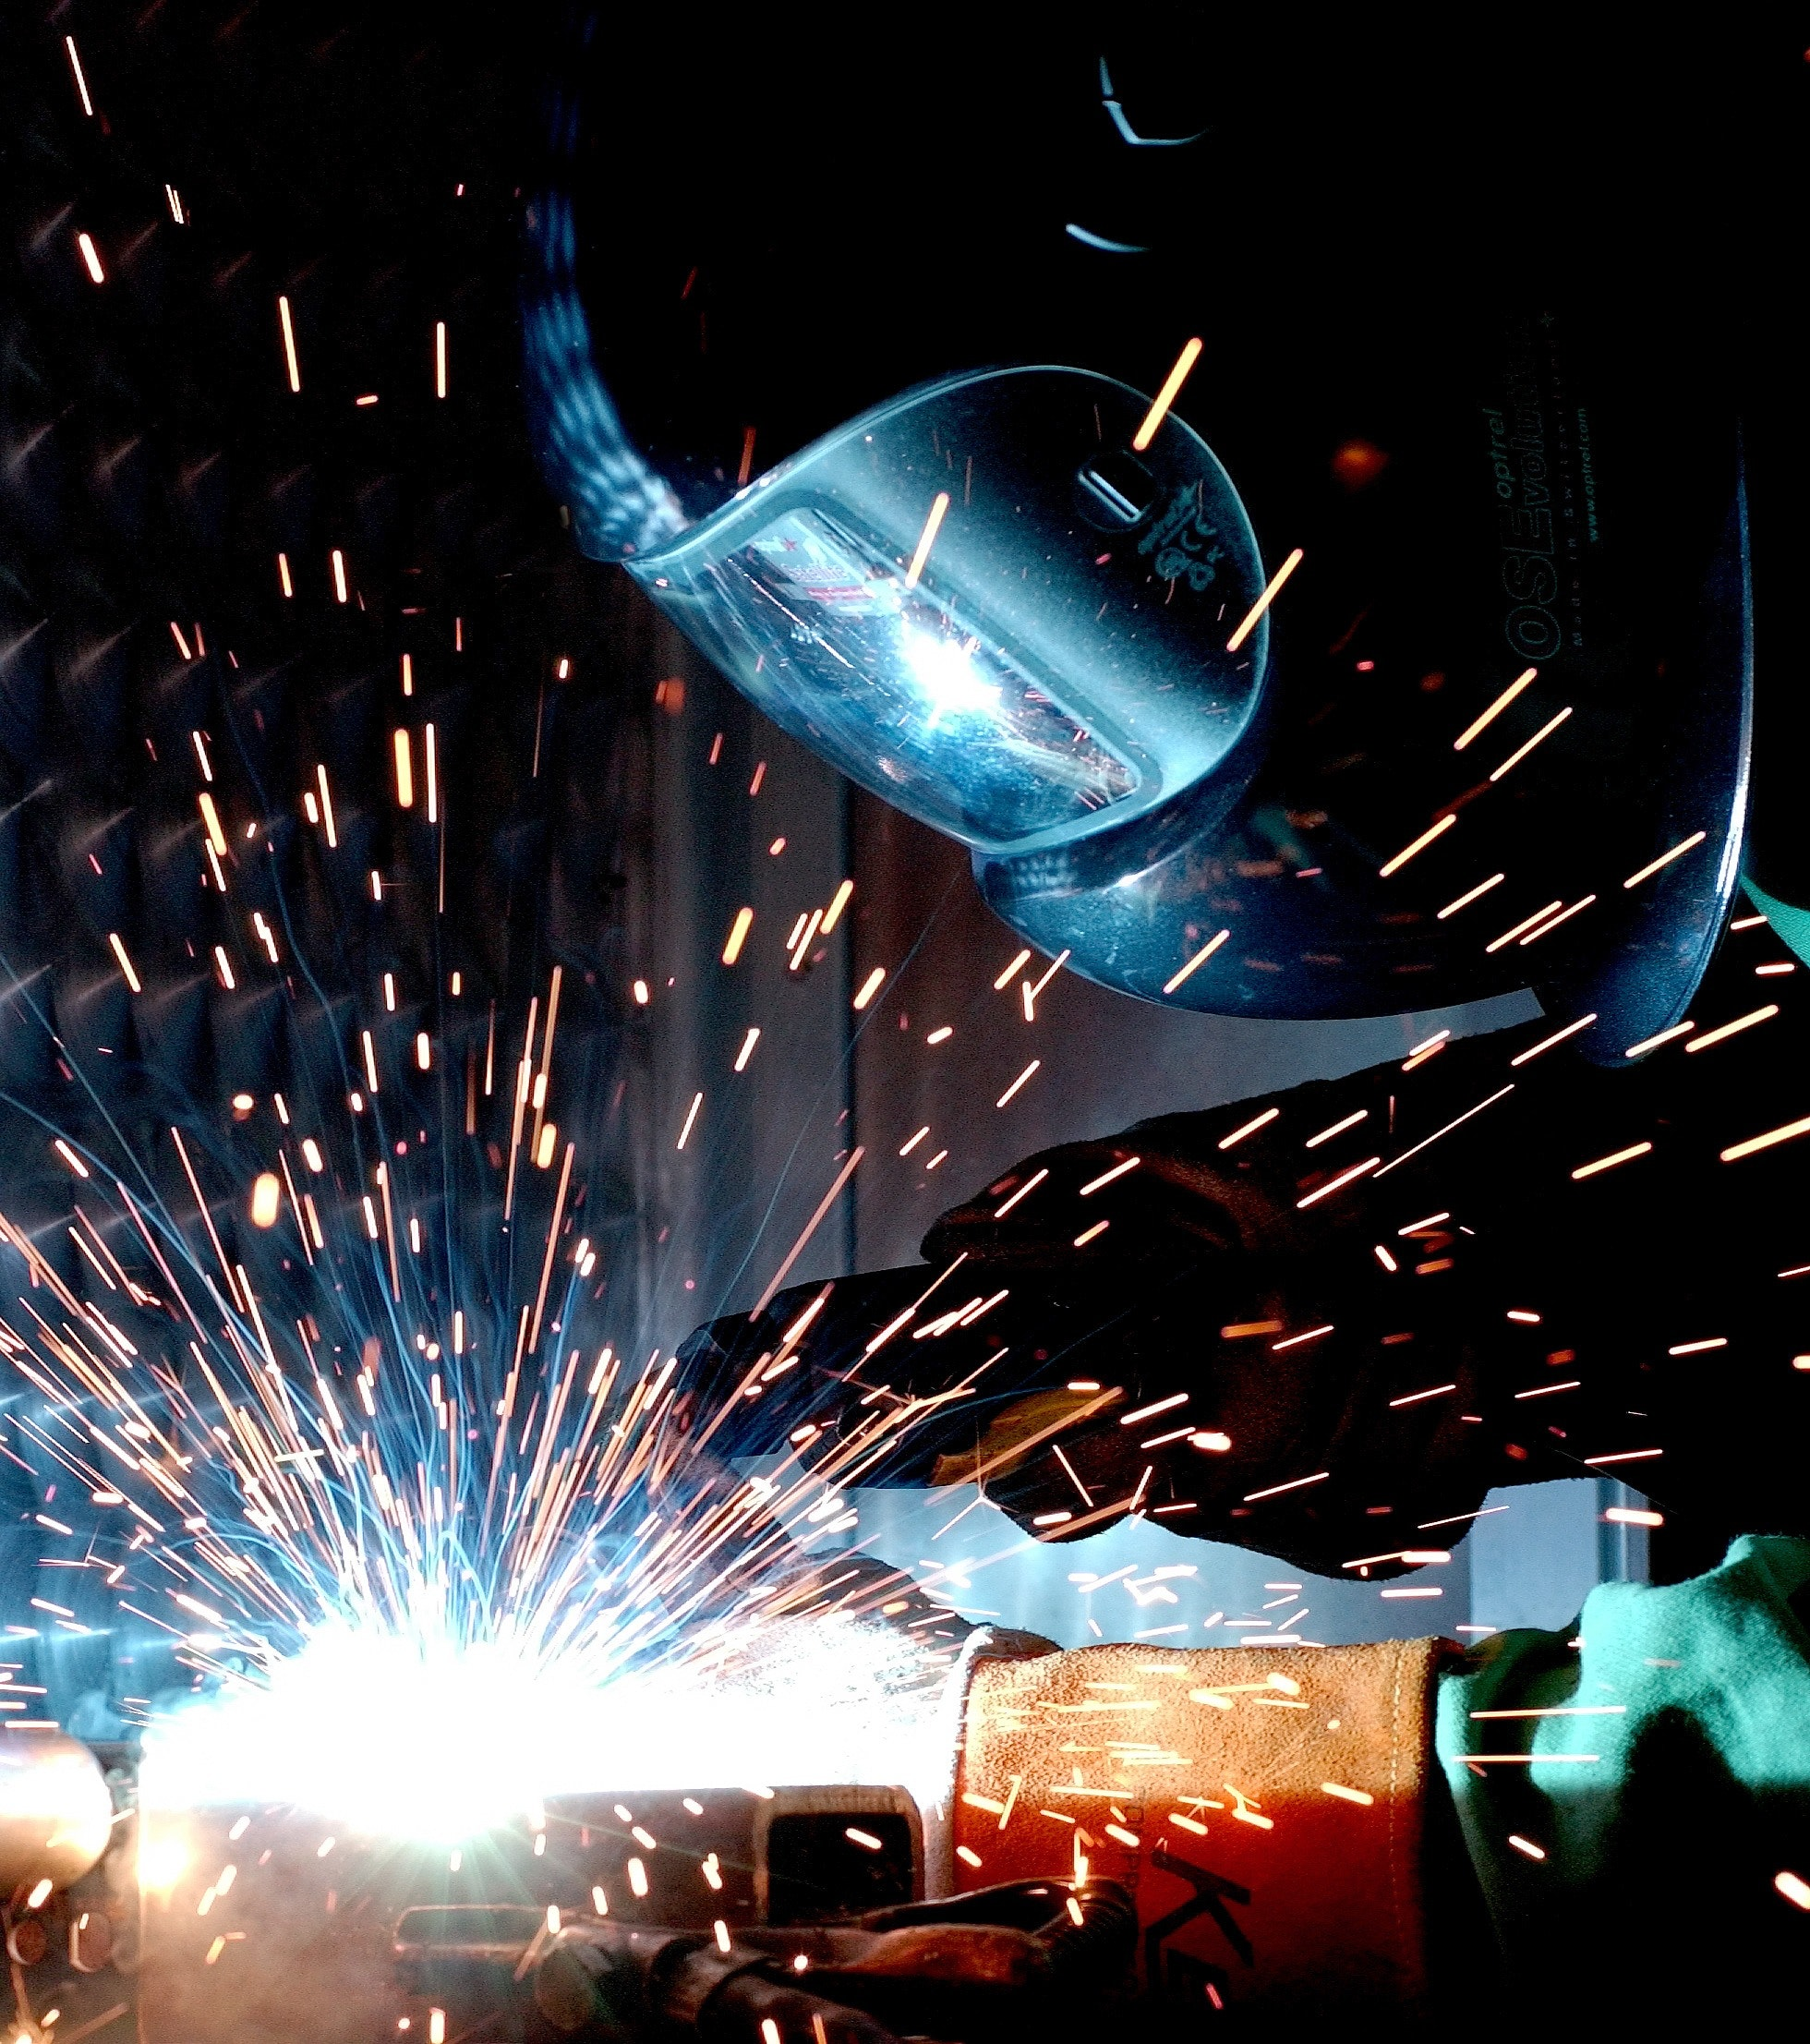 Person in Welding Mask While Welding a Metal Bar, Person, Sparks, Welder, Welding, HQ Photo